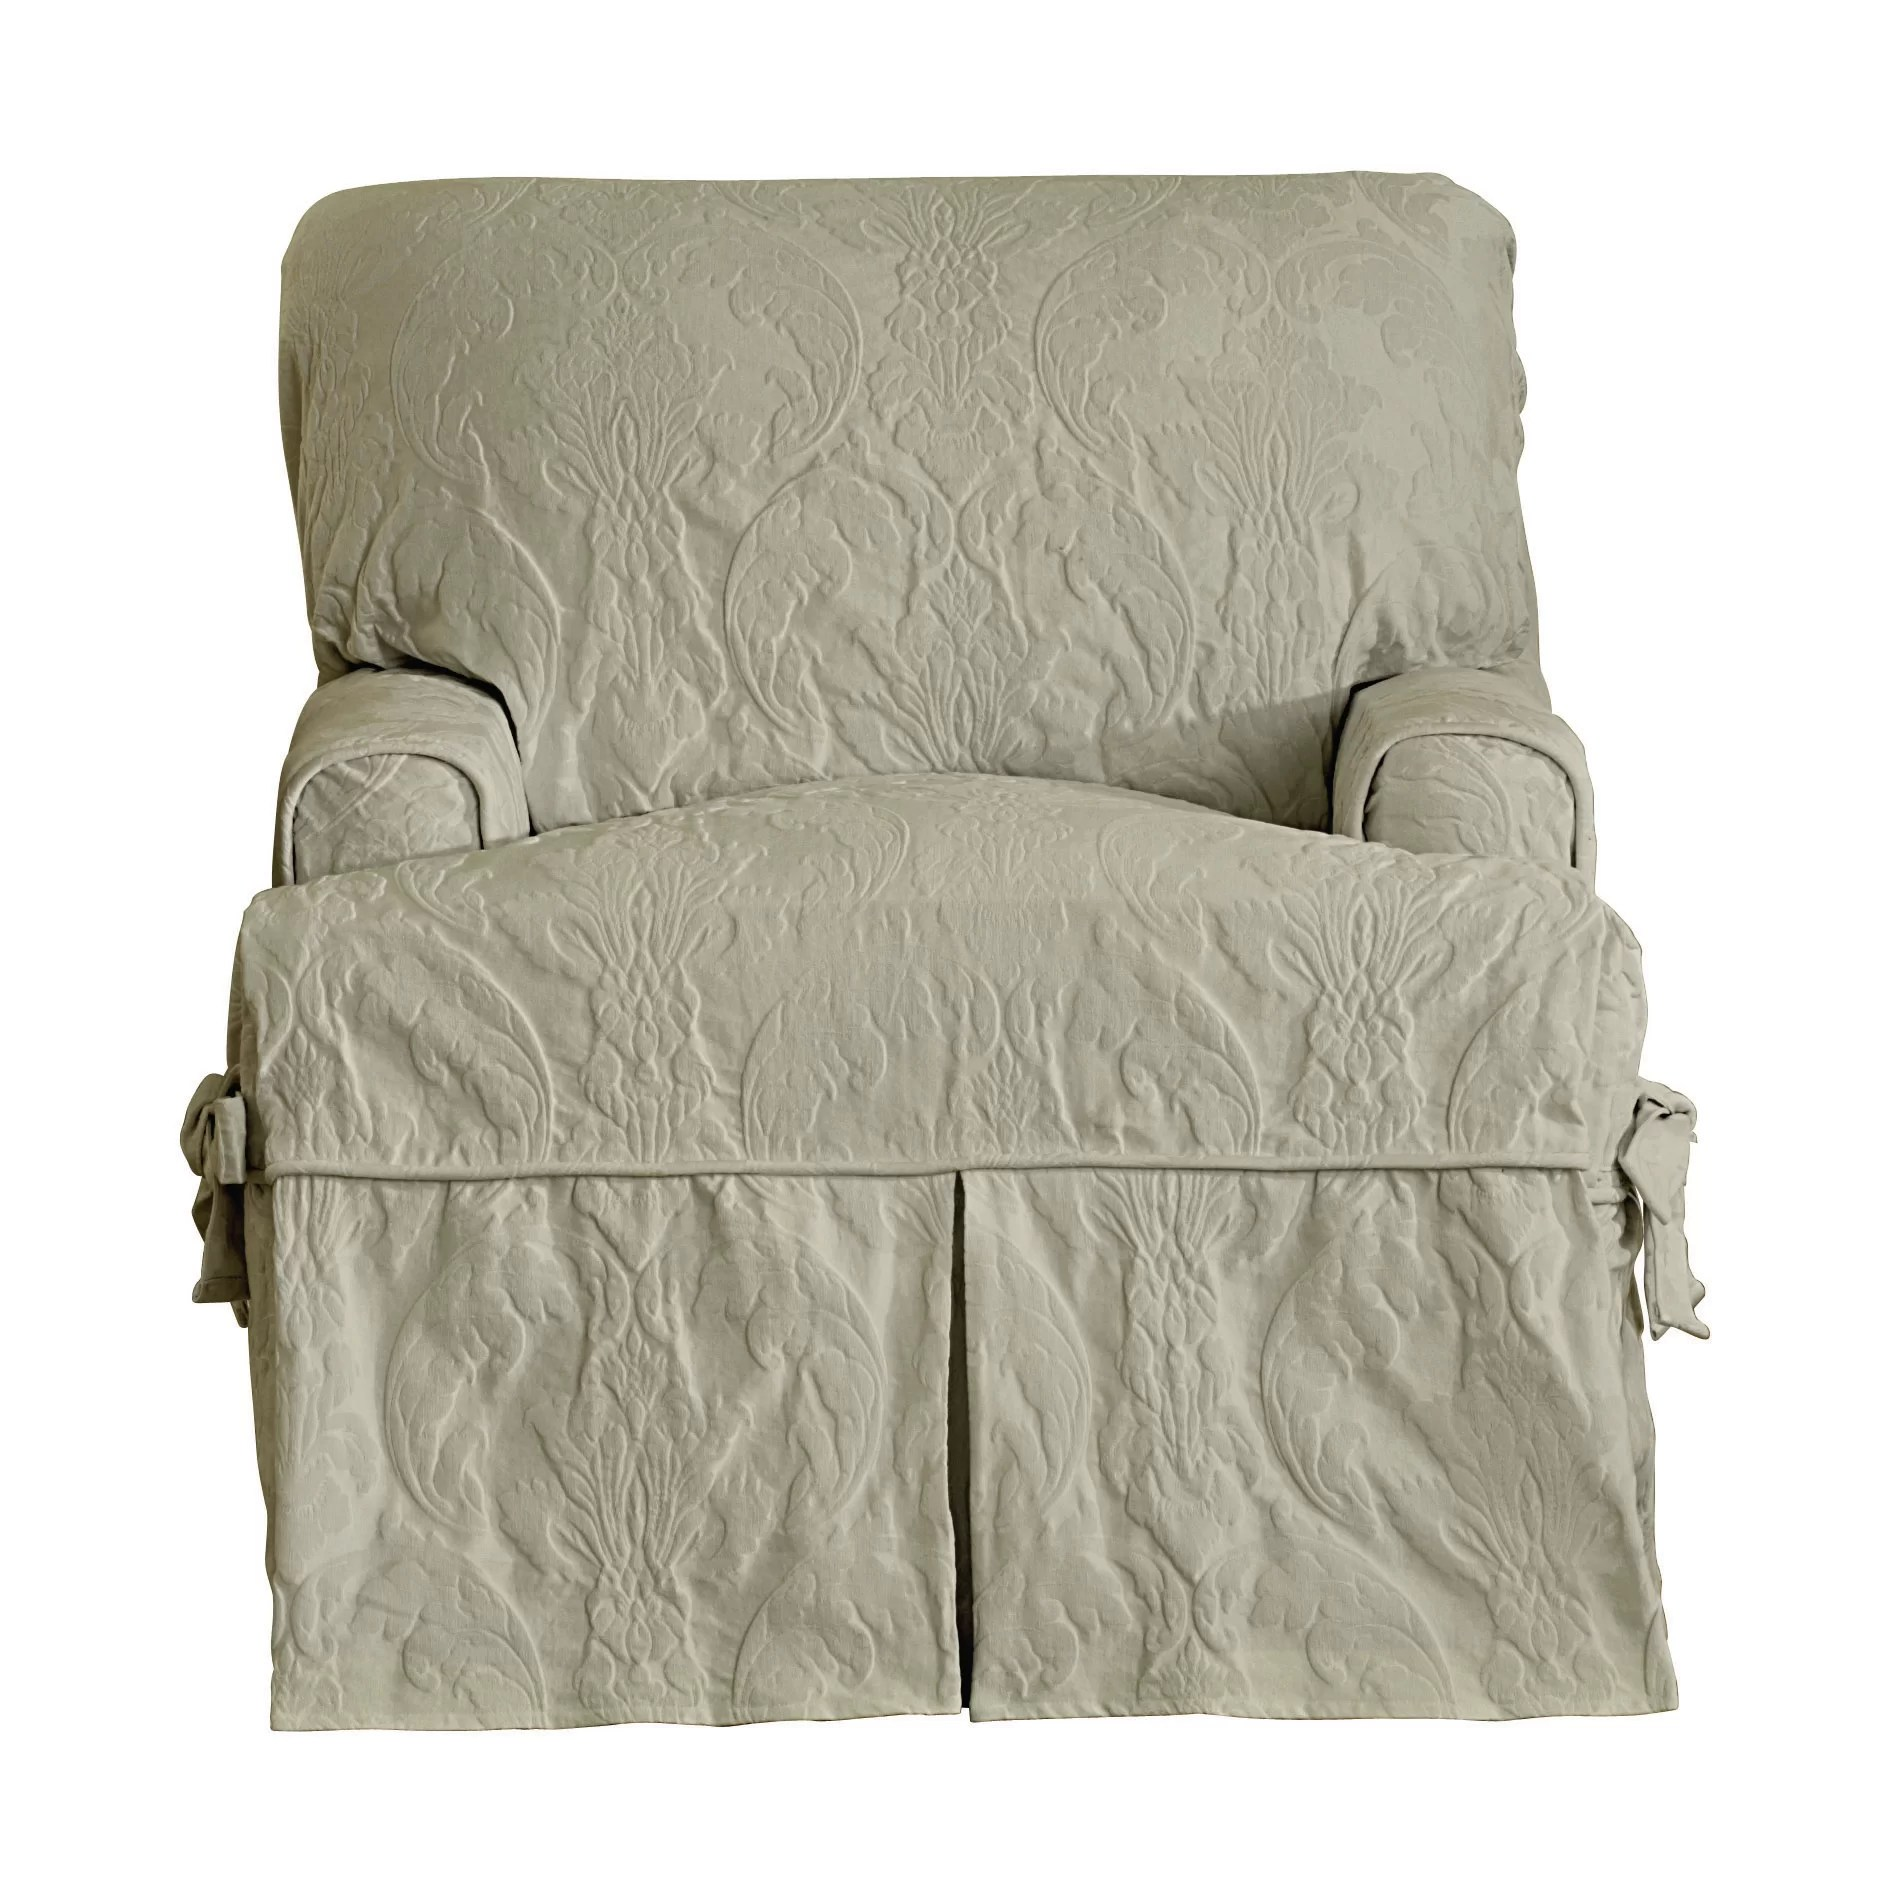 Chair Slipcovers T Cushion Sure Fit Matelasse Damask Chair T Cushion Slipcover Ebay